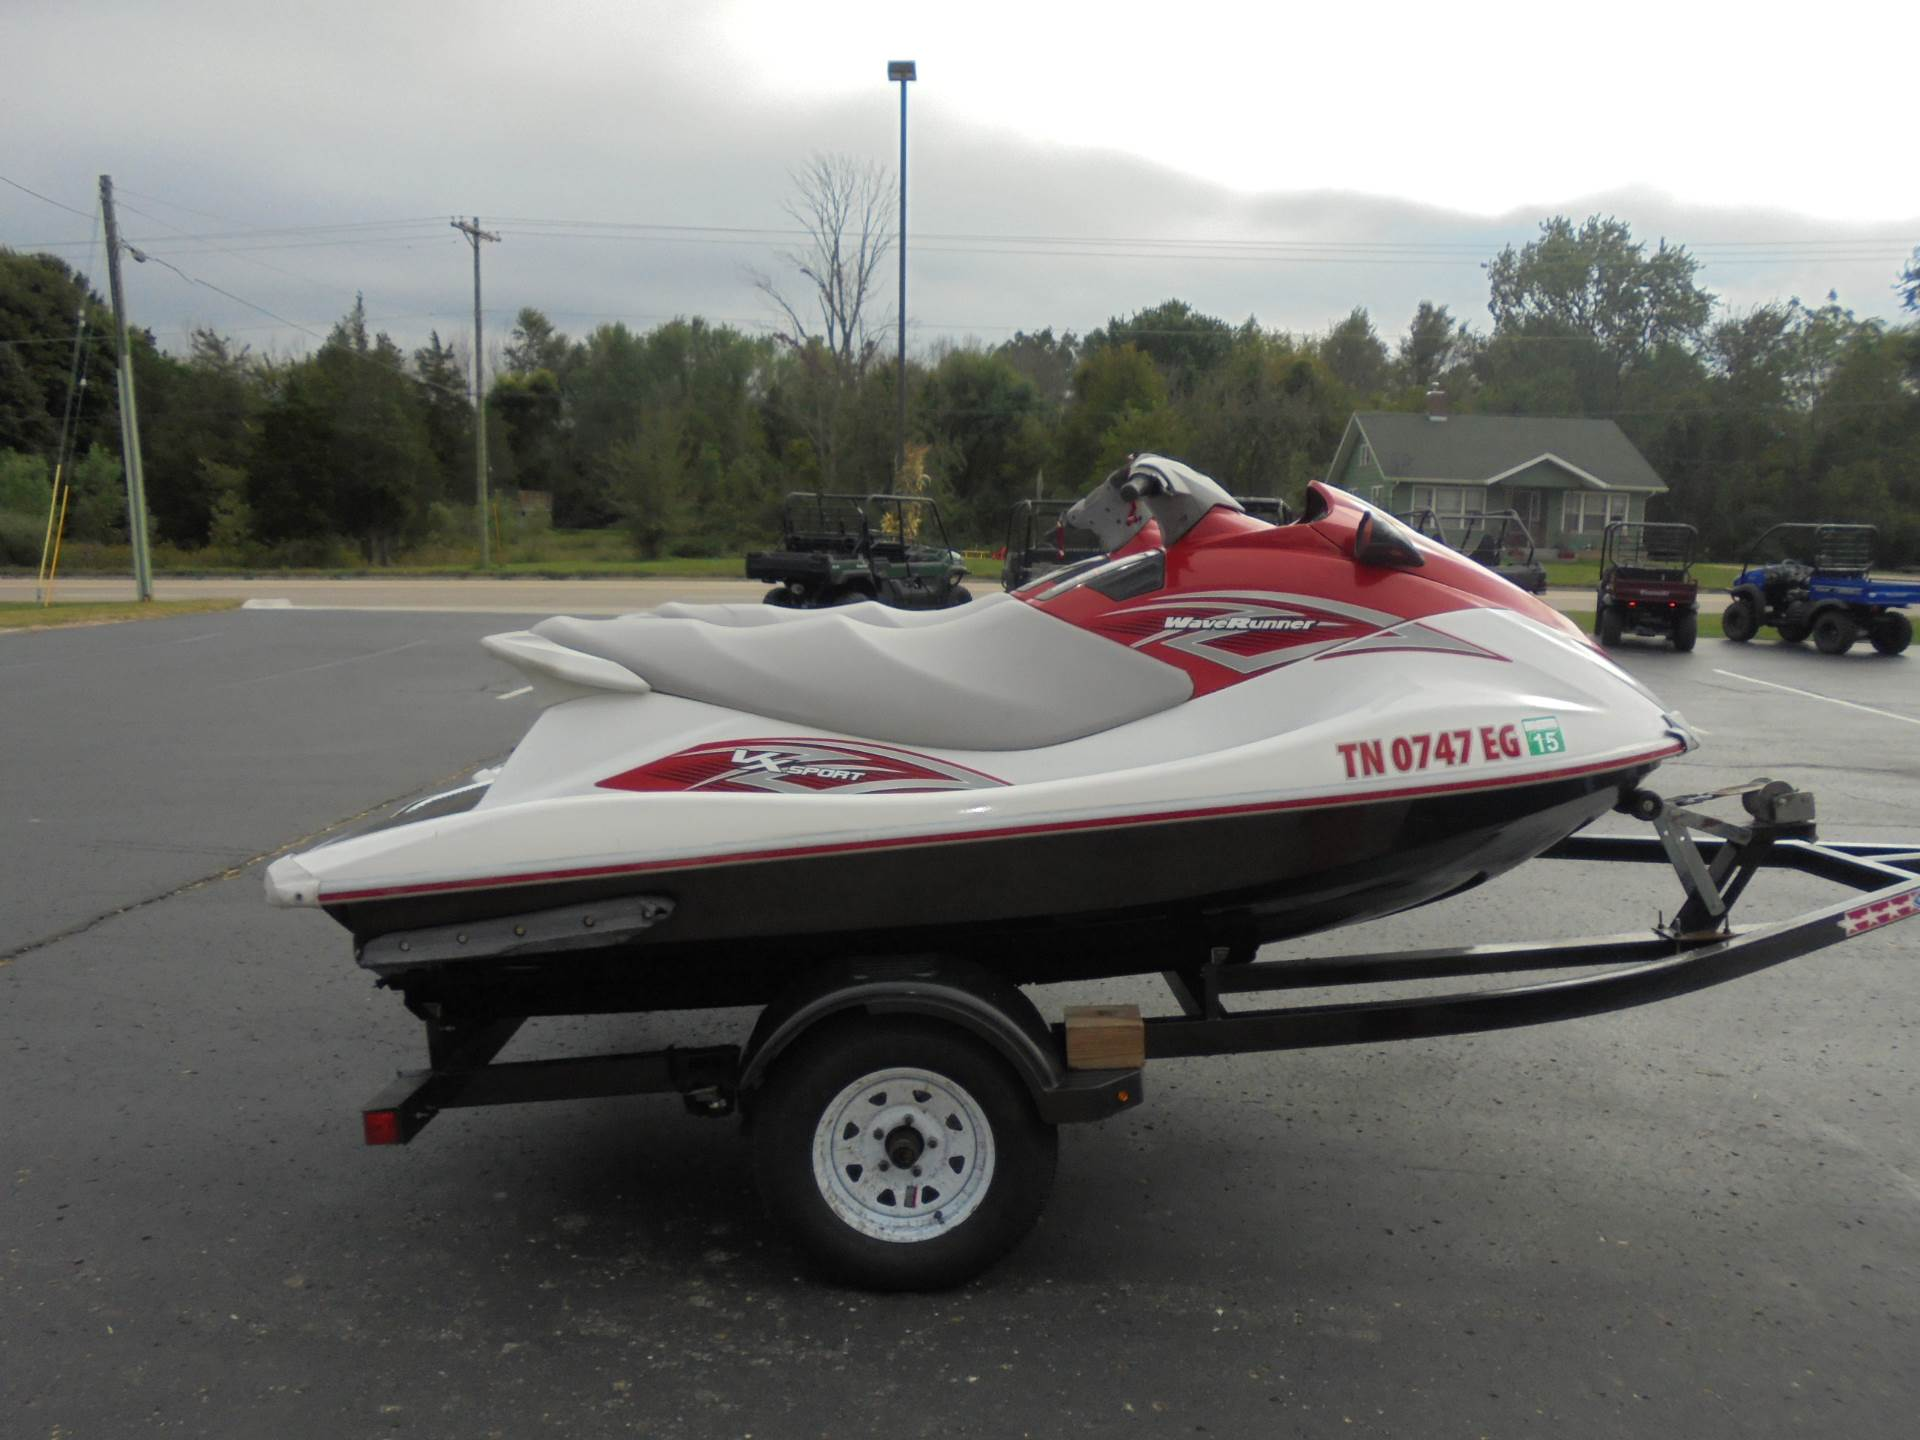 2011 Yamaha VX™ Sport in South Haven, Michigan - Photo 1